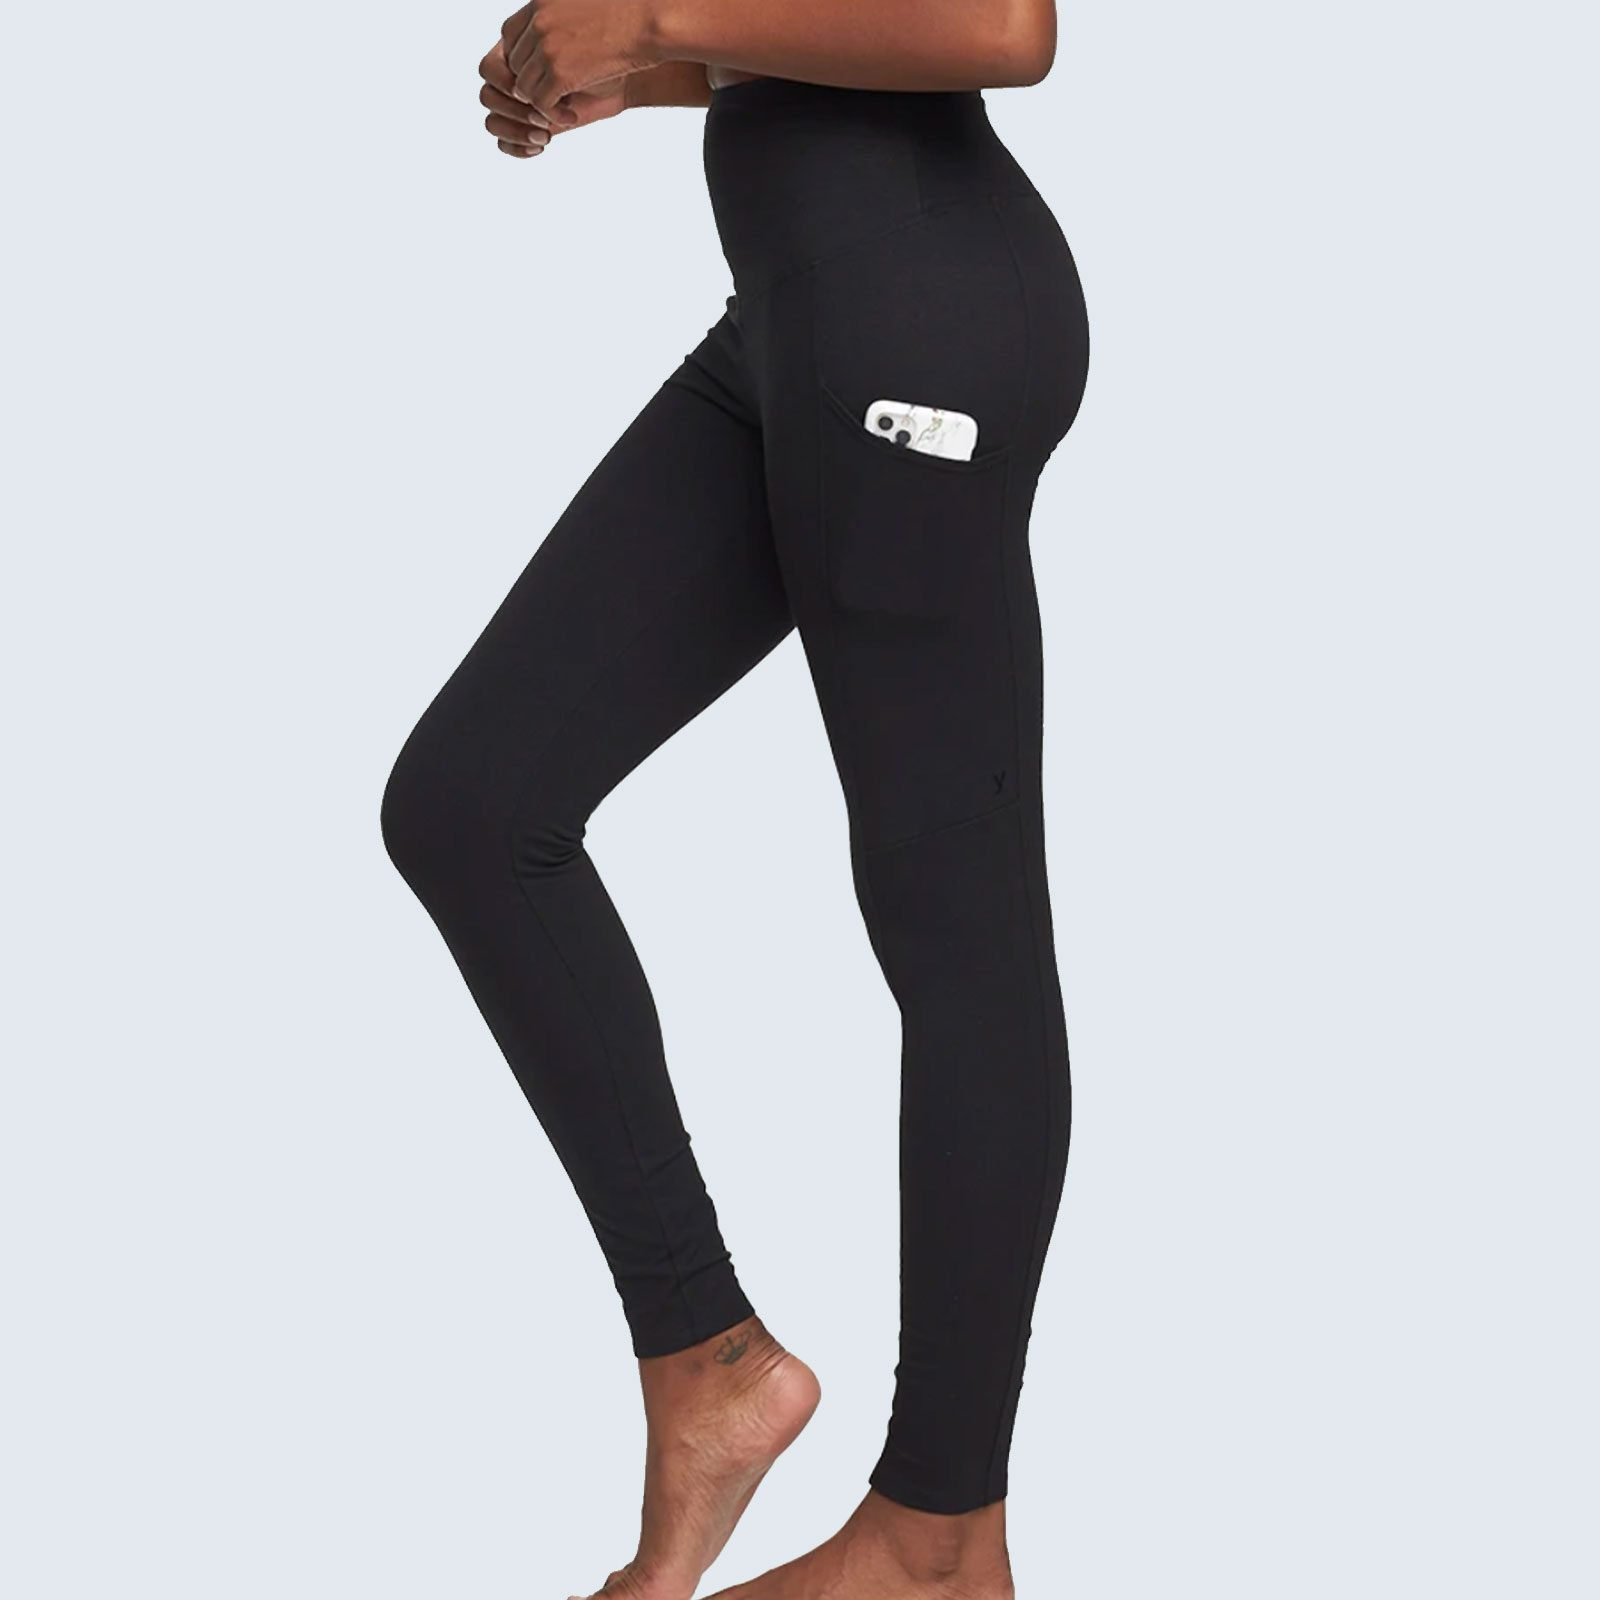 Best Butt-Lifting Leggings with Pockets